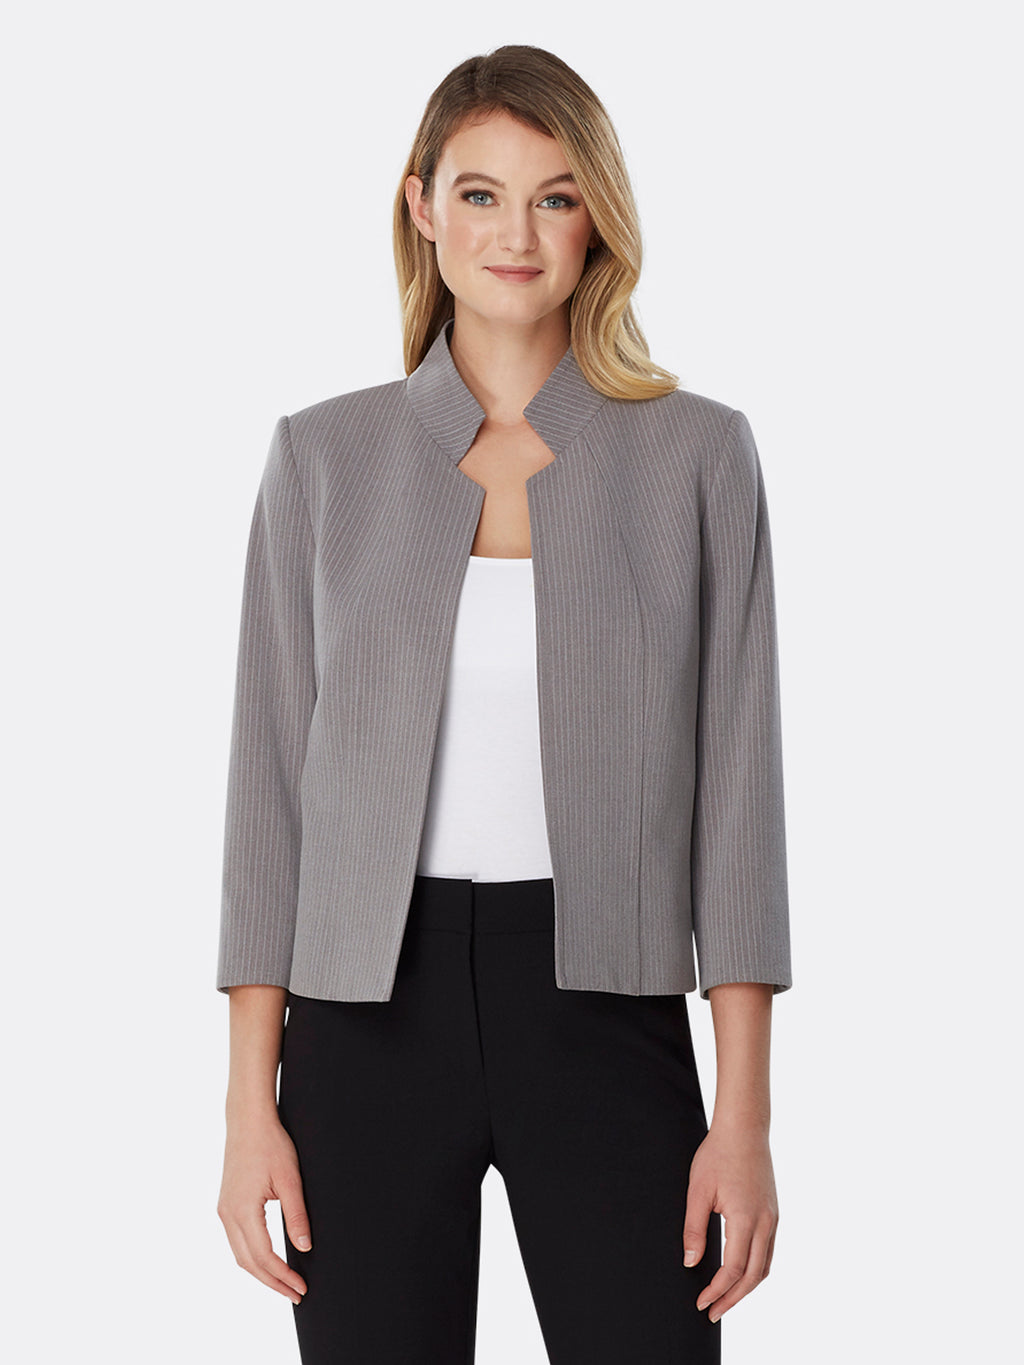 Pinstriped Bi-Stretch Stand Collar Jacket